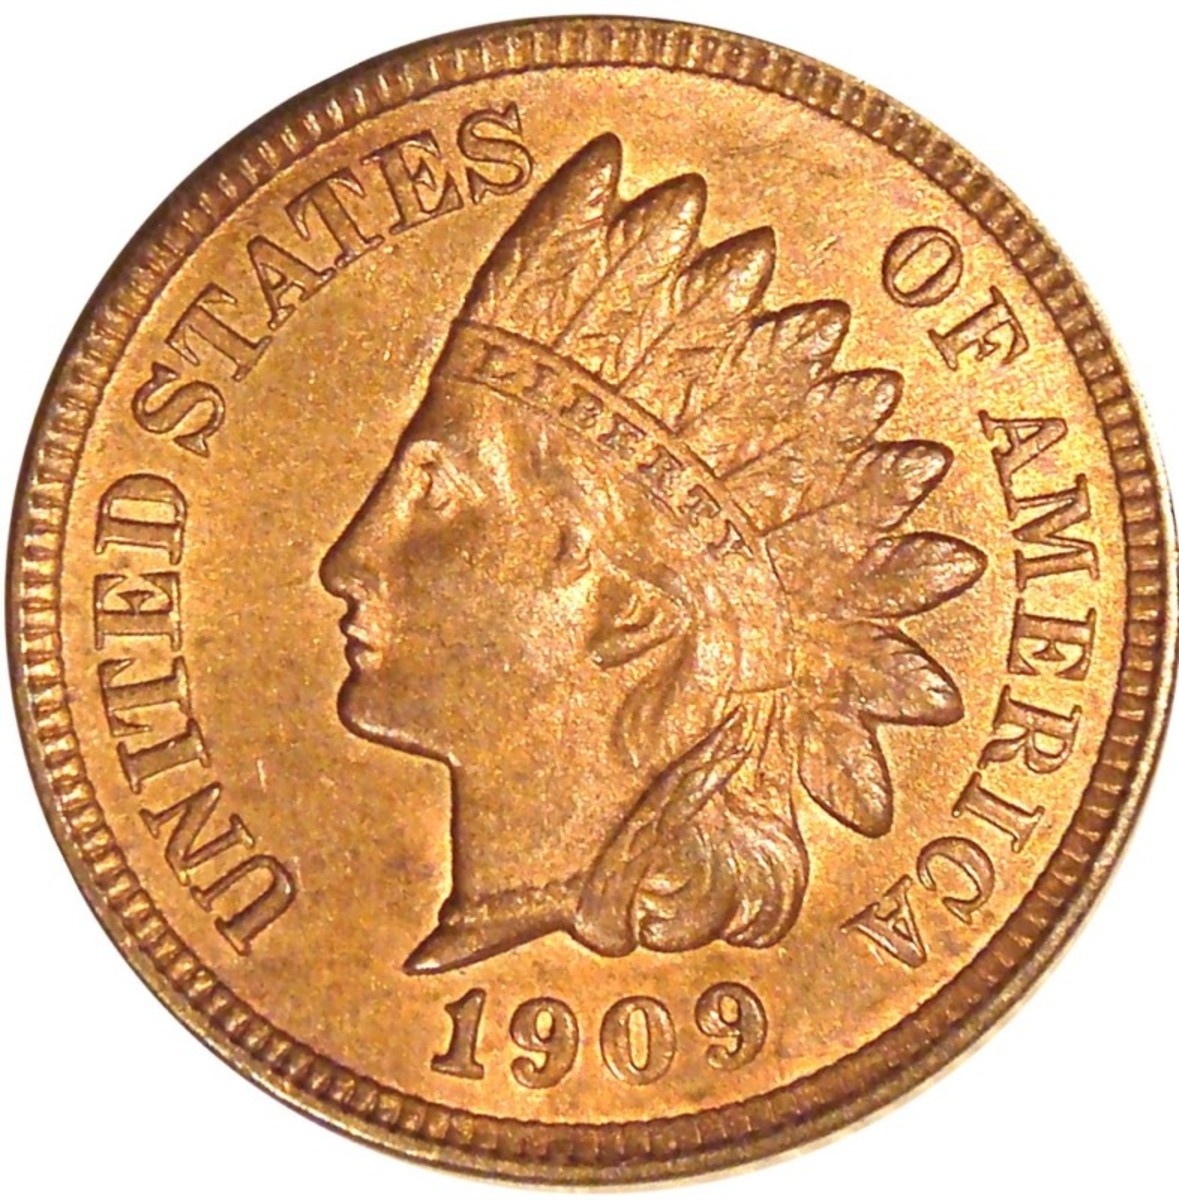 1909 Indian Head penny red